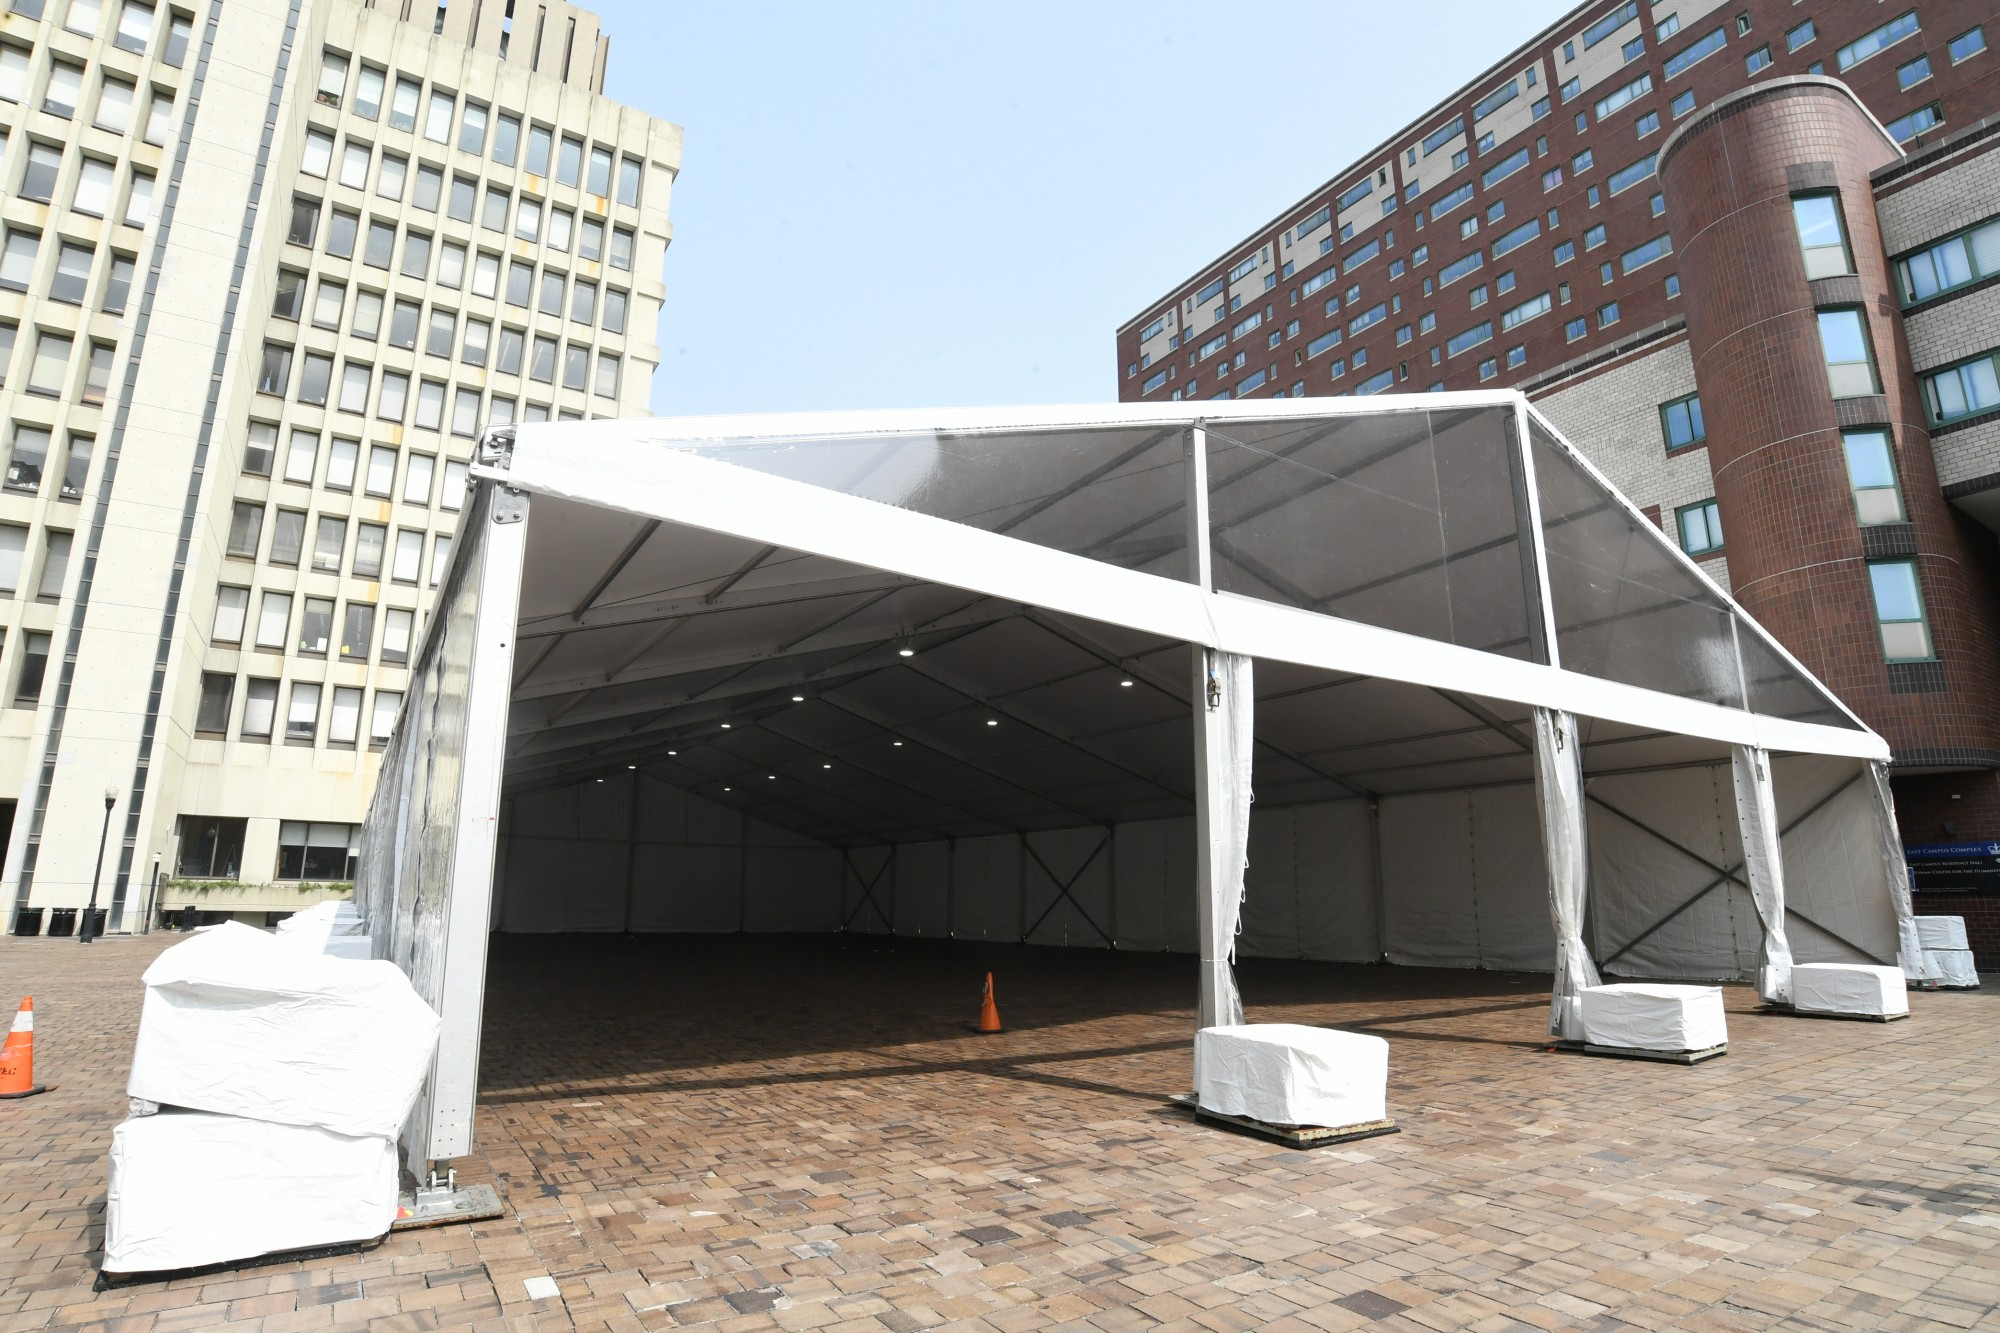 An open air tent erected on a brick patio outside of two University buildings.